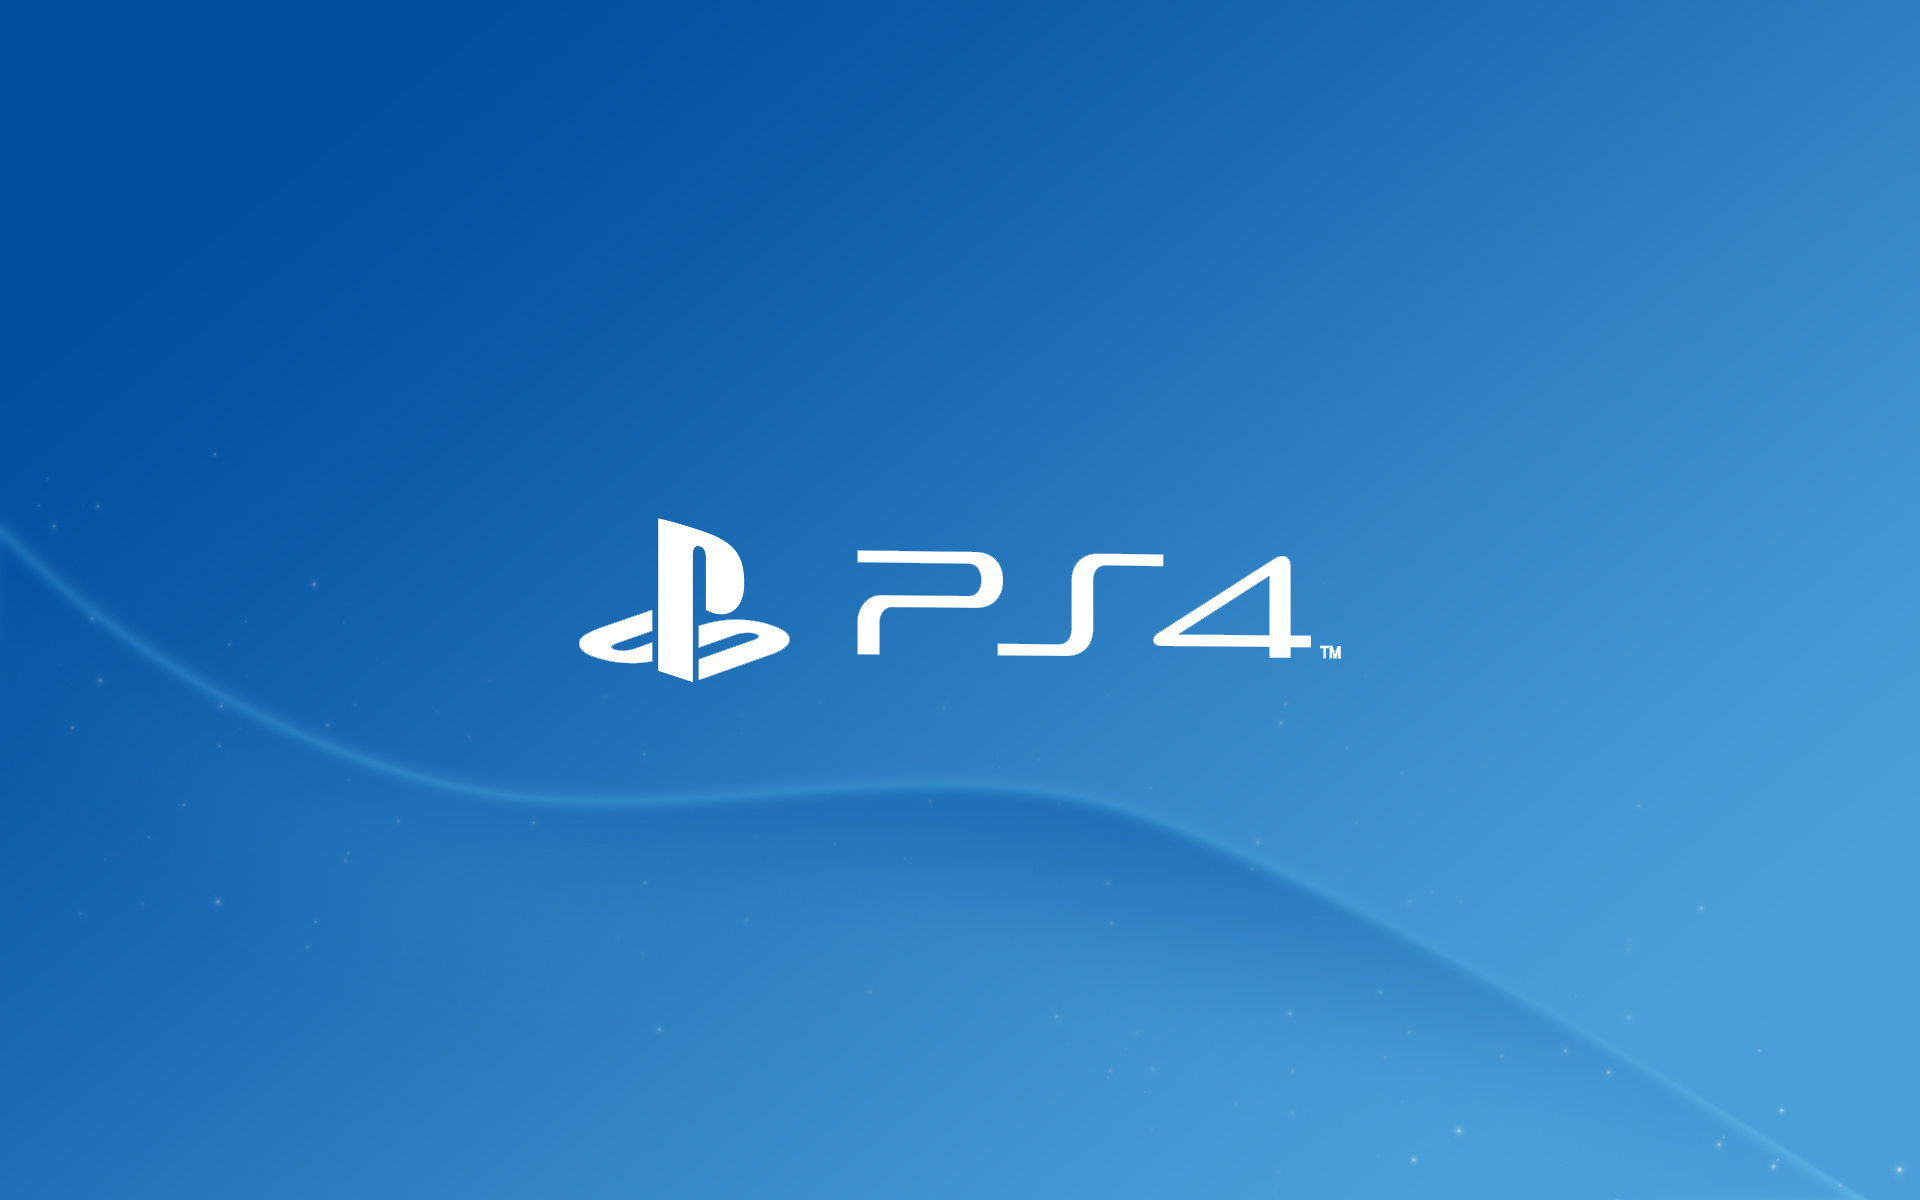 Playstation 4 Wallpaper Hd Wallpapersafari